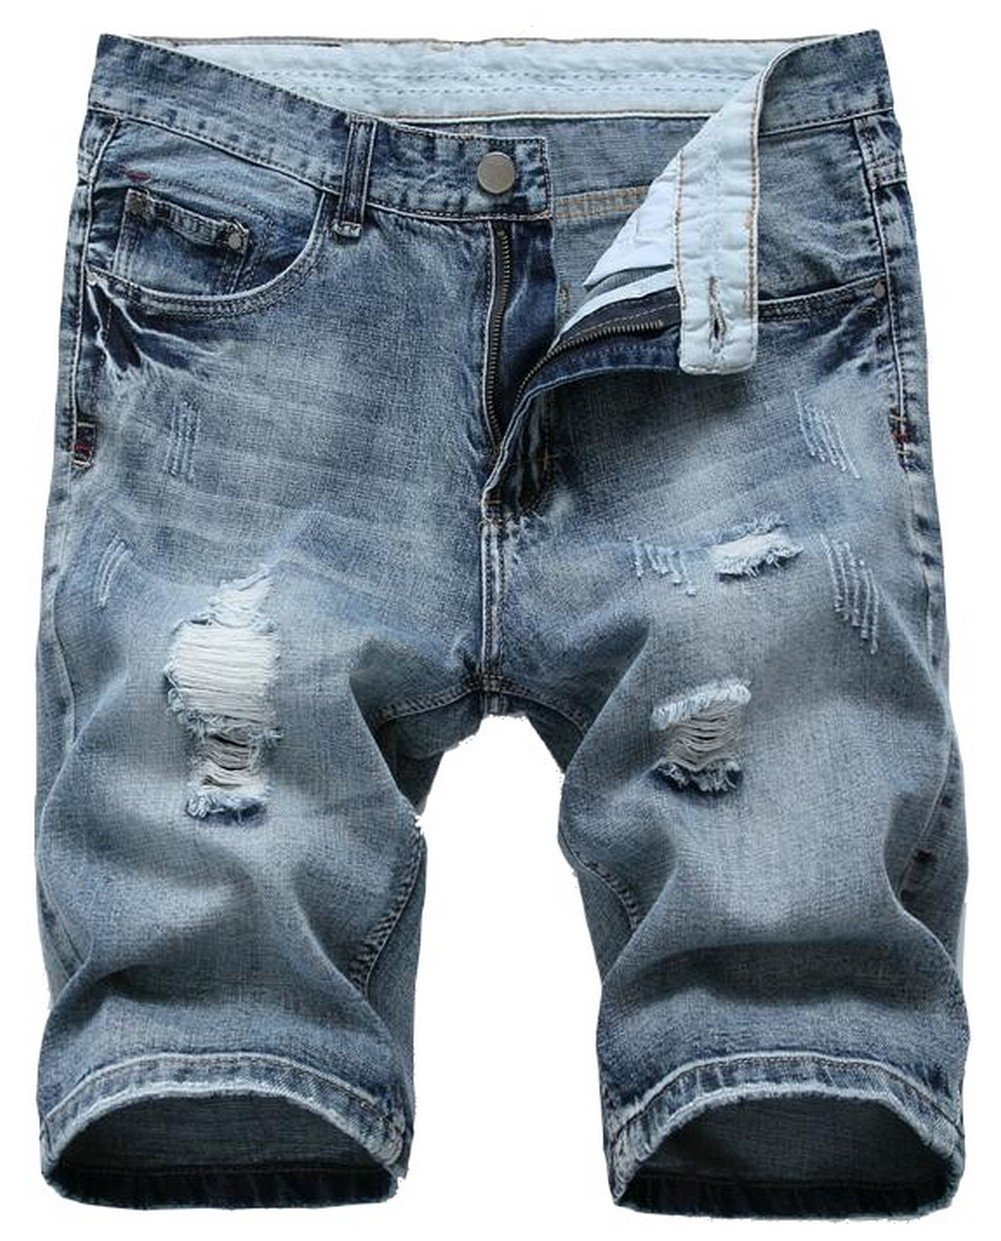 Jinmen Men's Regular Fit Ripped Distressed Straight Denim Shorts Hole